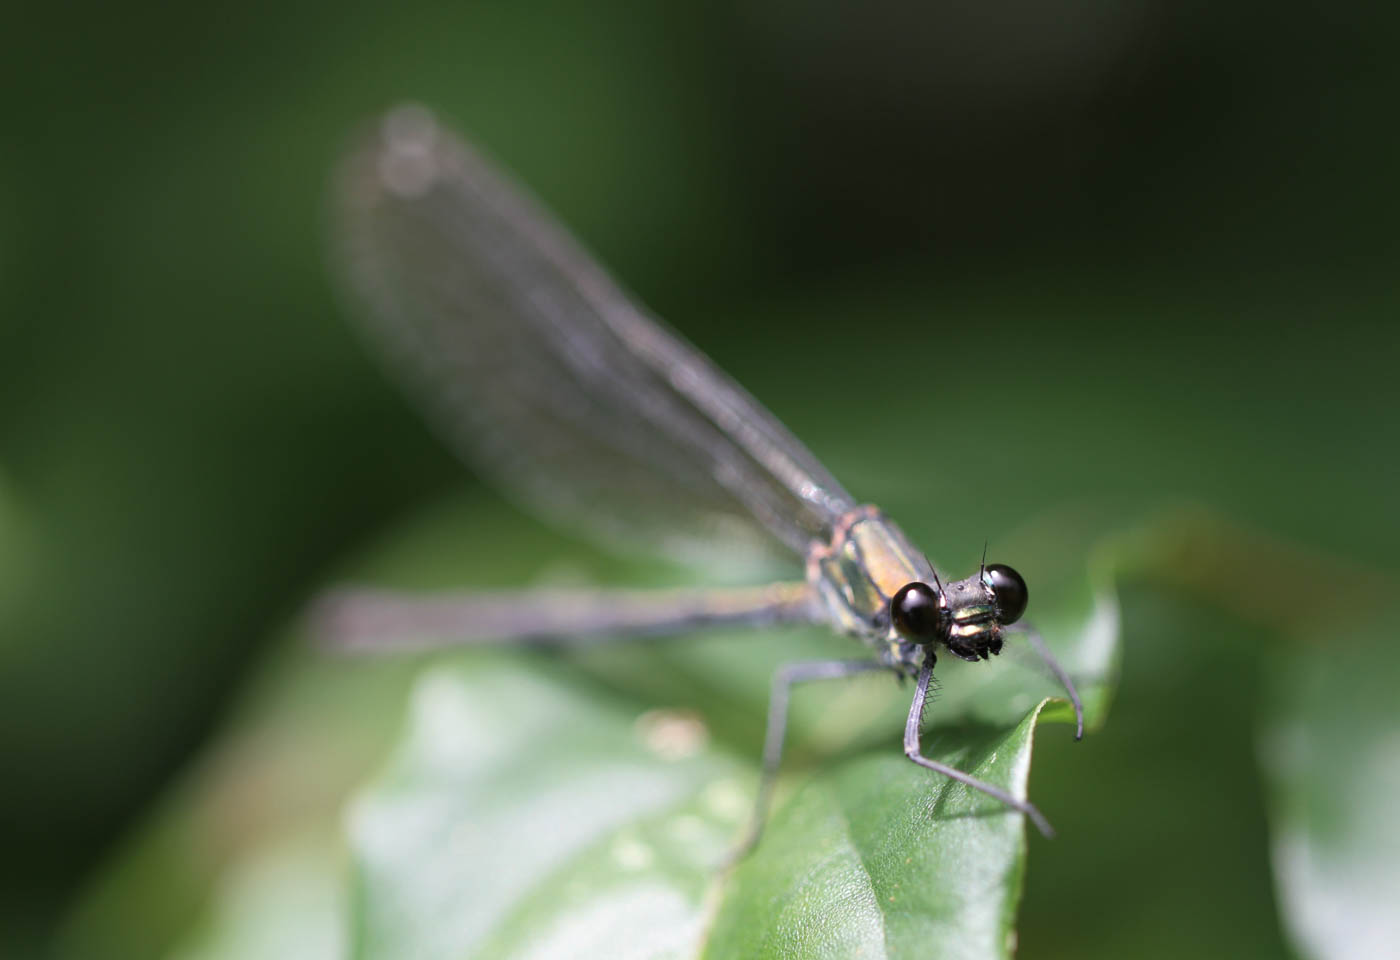 Close up of a dragonfly on leaf